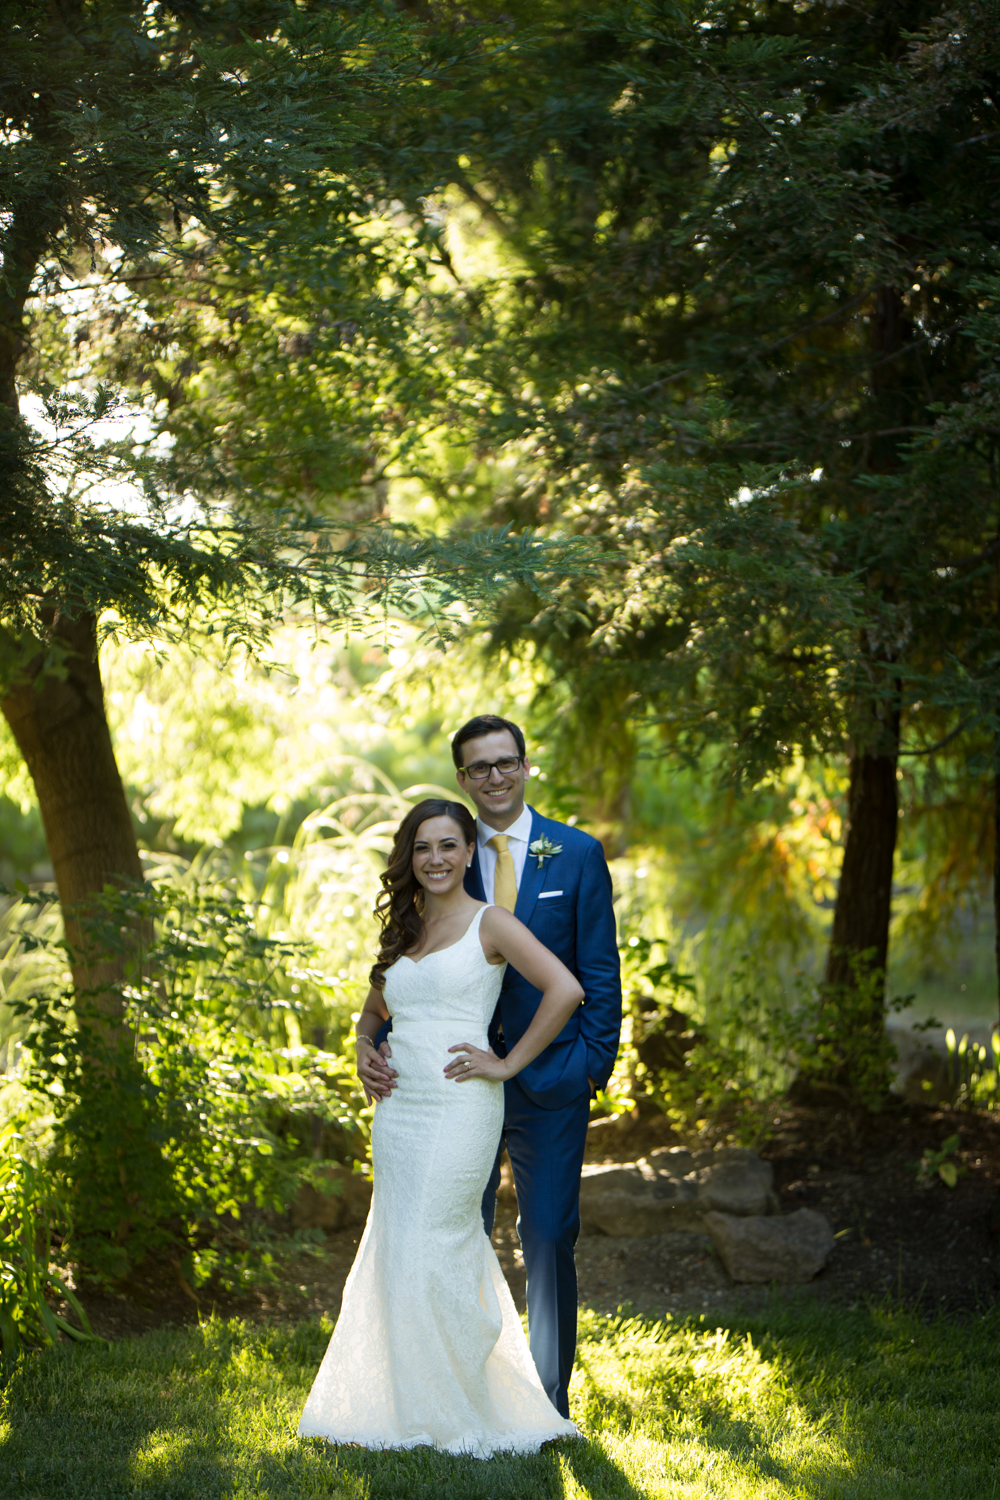 Katie & Chris's Wedding - Saralee's Vineyard